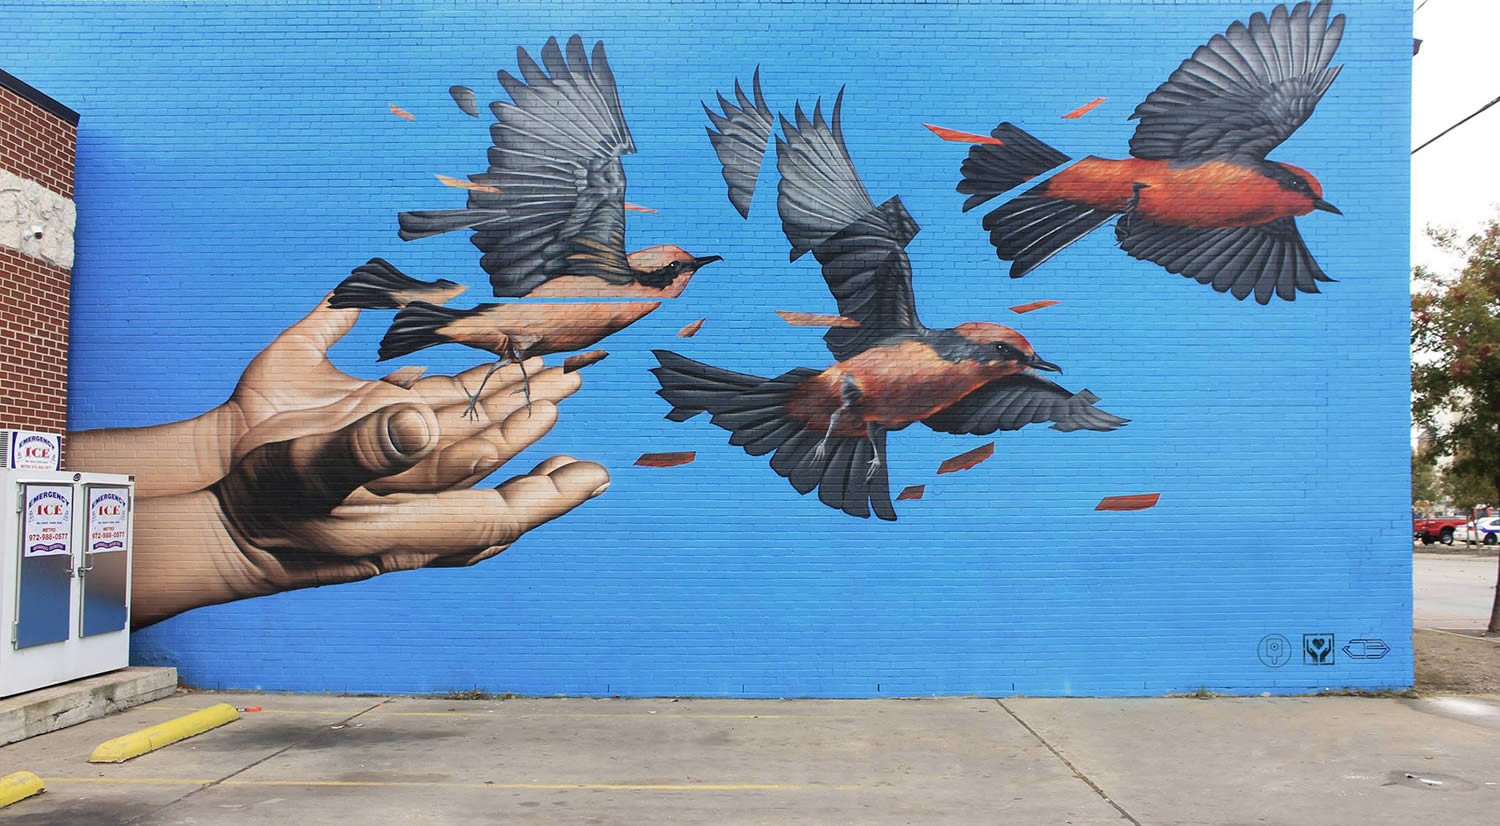 treet art of birds flying by james bullough